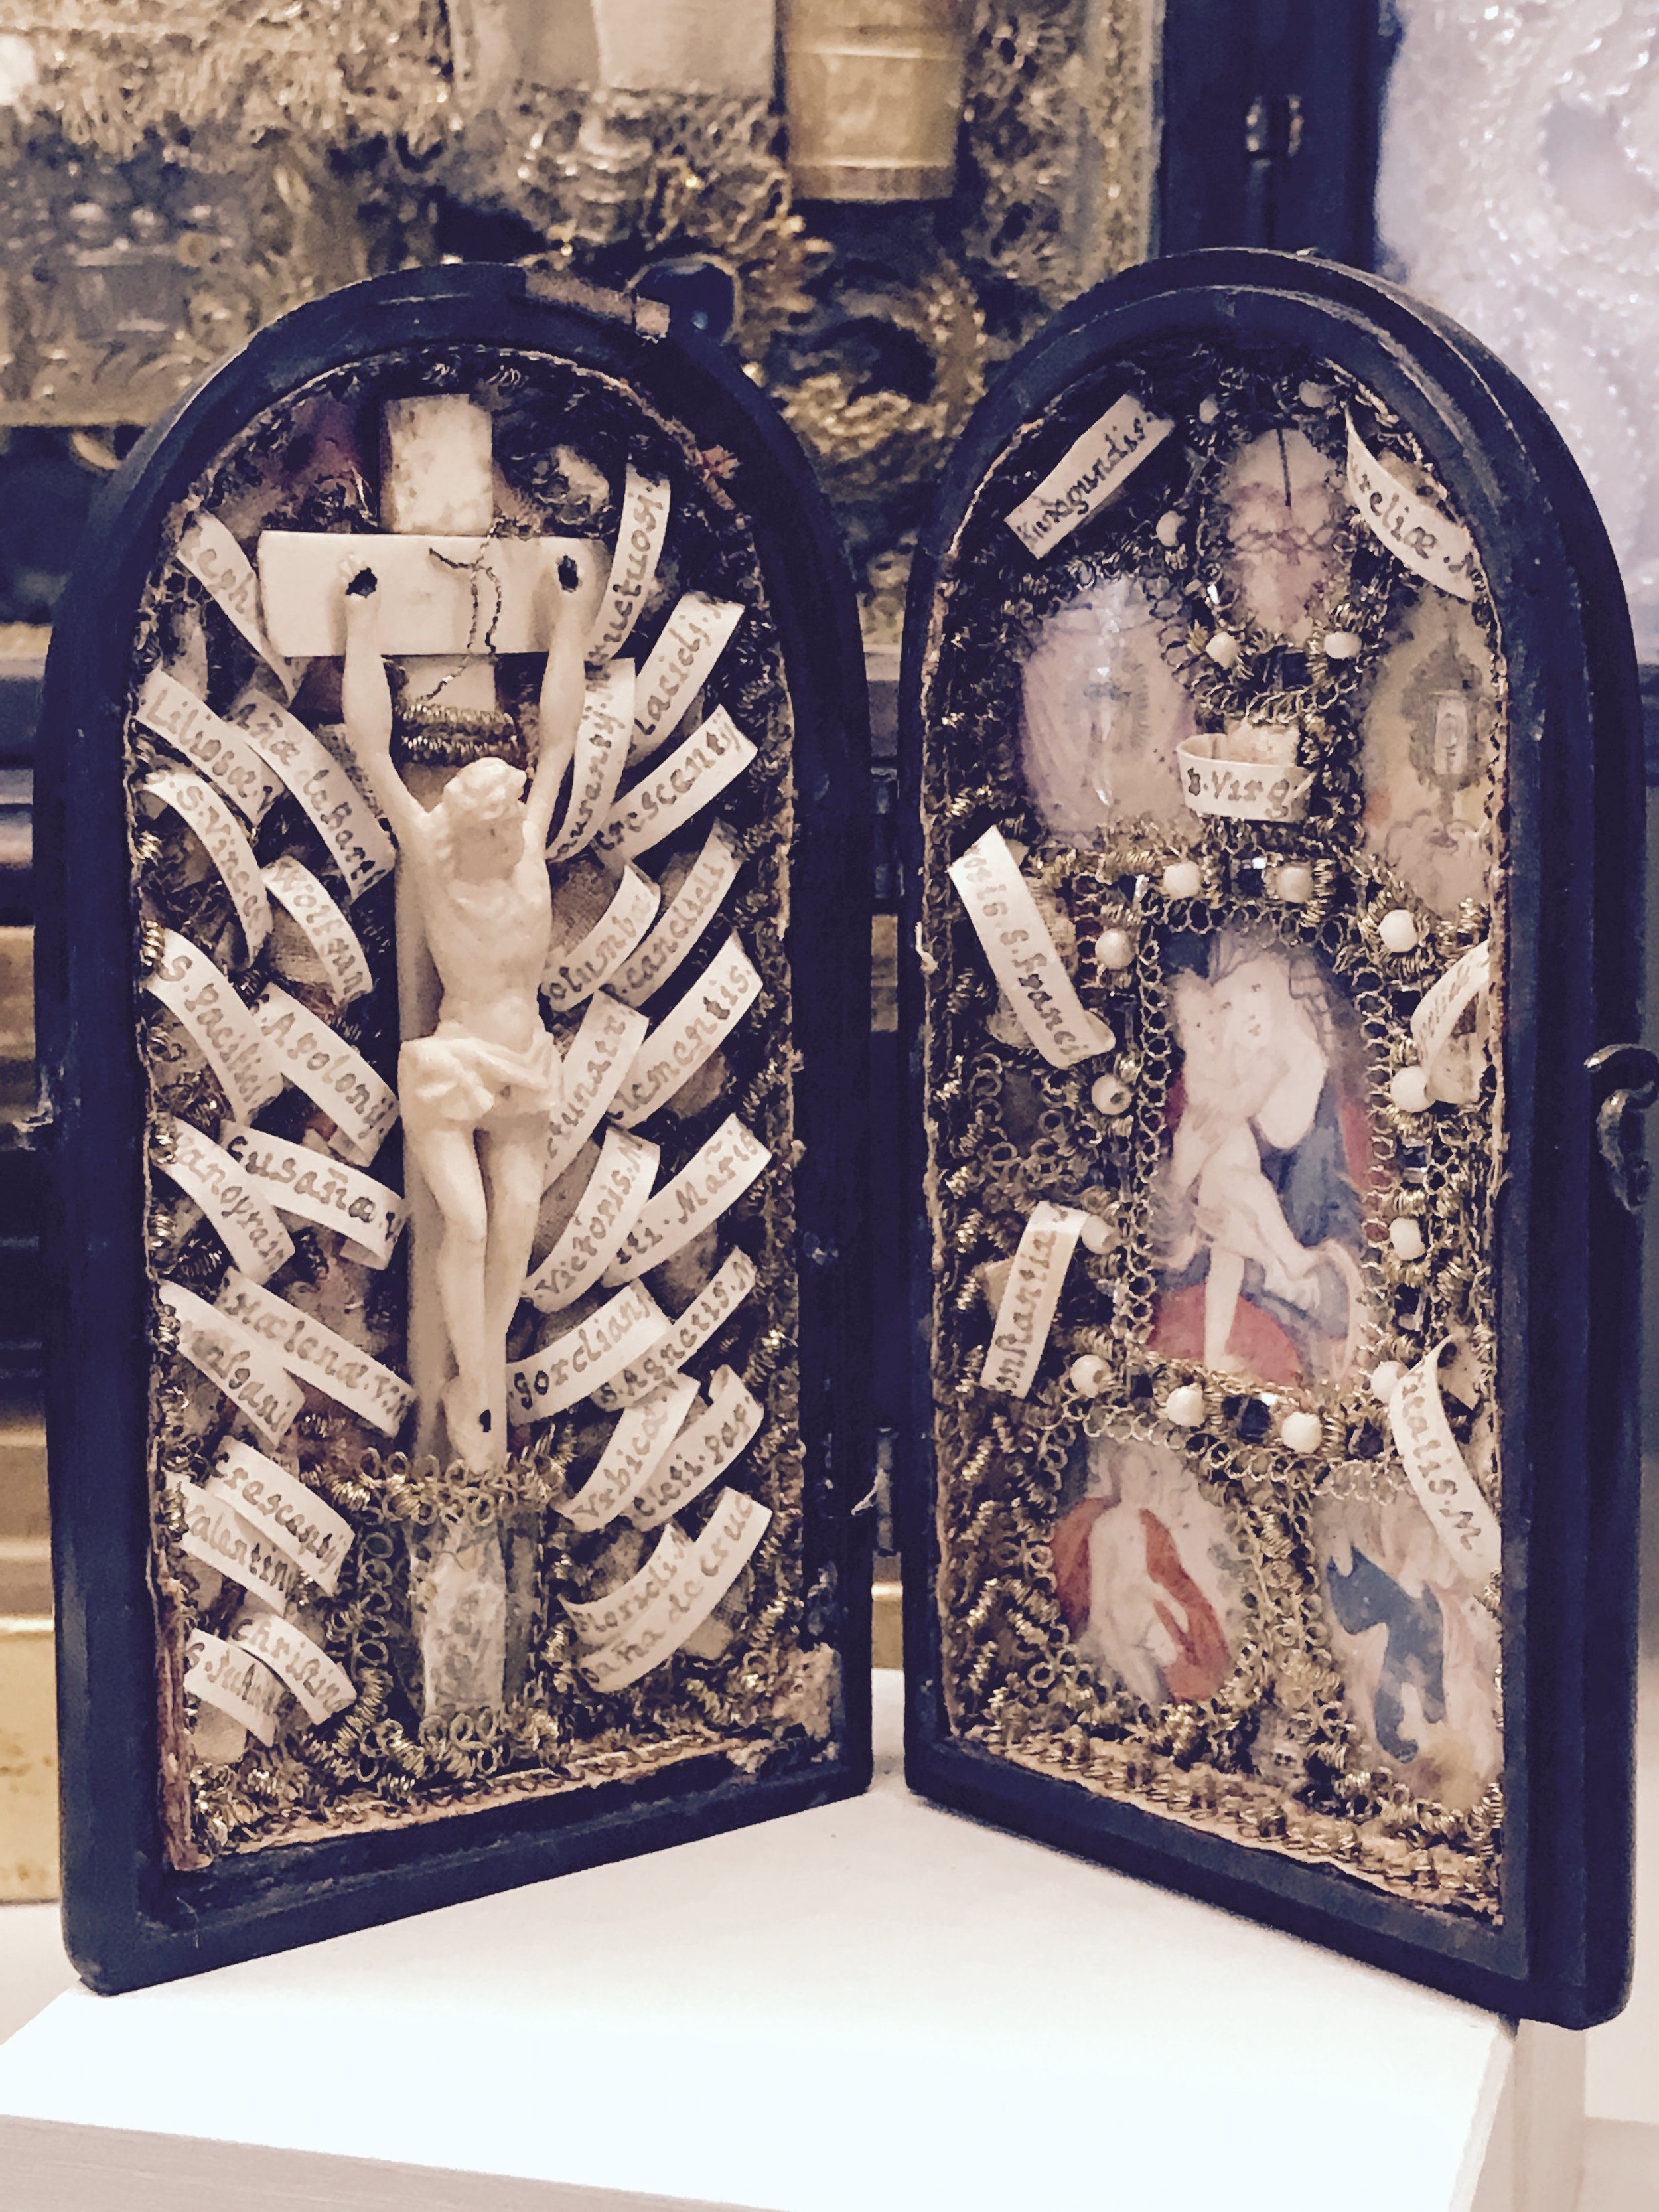 Relics on display in the abbey